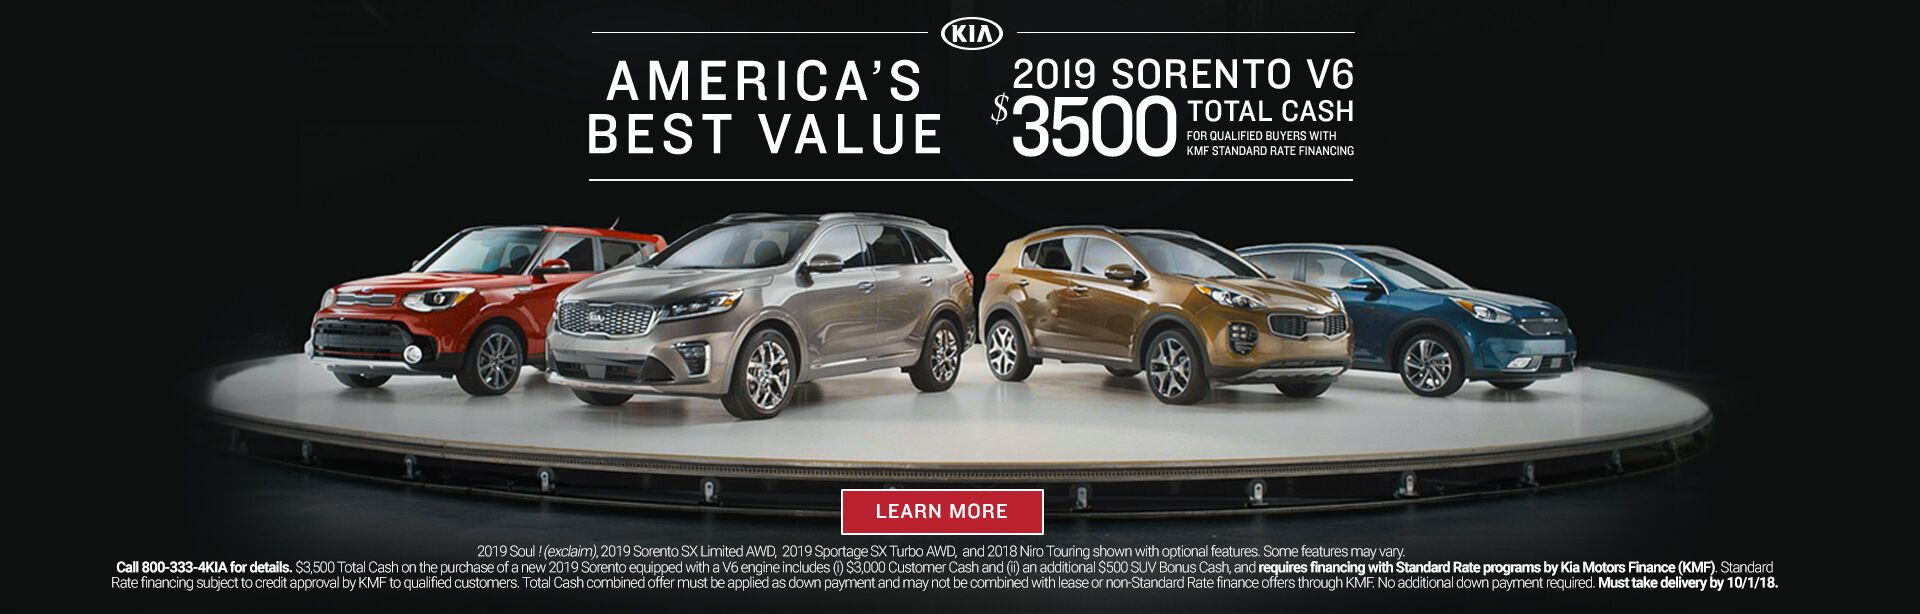 America's Best Value 2019 Sorento Matt Blatt Kia of Toms River